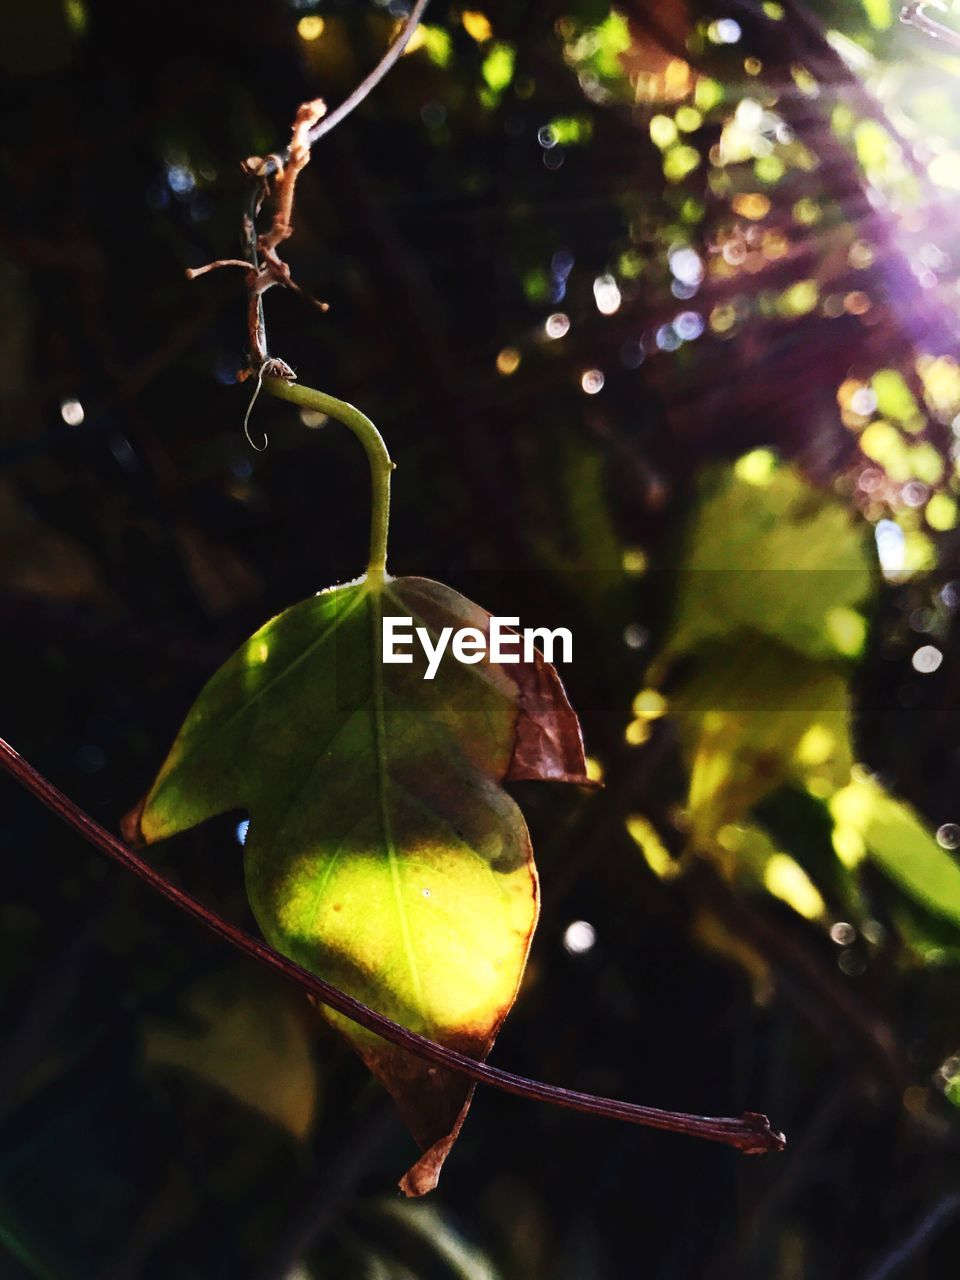 leaf, close-up, green color, nature, focus on foreground, outdoors, no people, growth, plant, beauty in nature, tree, day, fruit, freshness, branch, food, water, animal themes